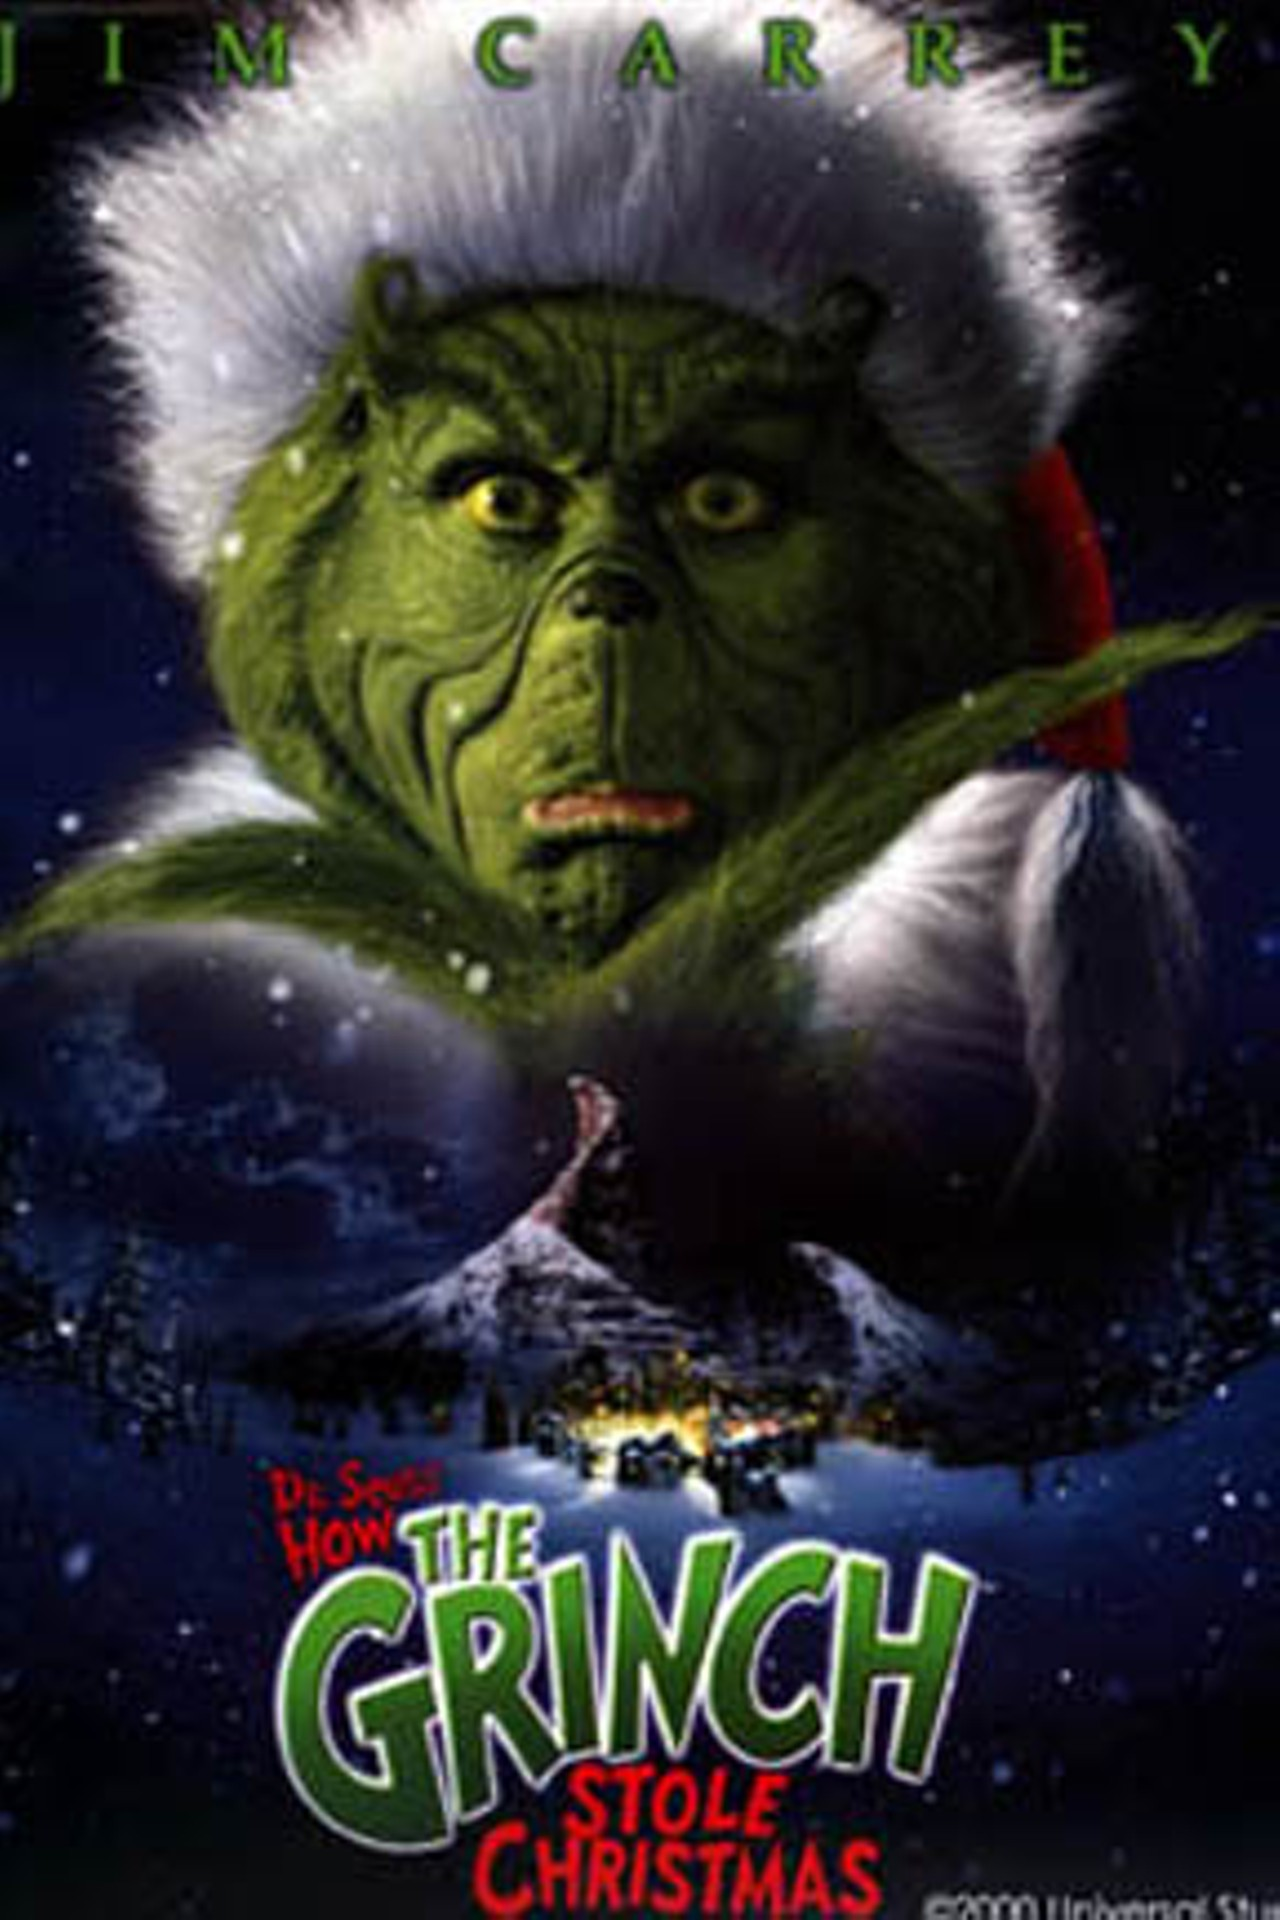 click to enlarge 25287_aajpg - How The Grinch Stole Christmas 2000 Cast